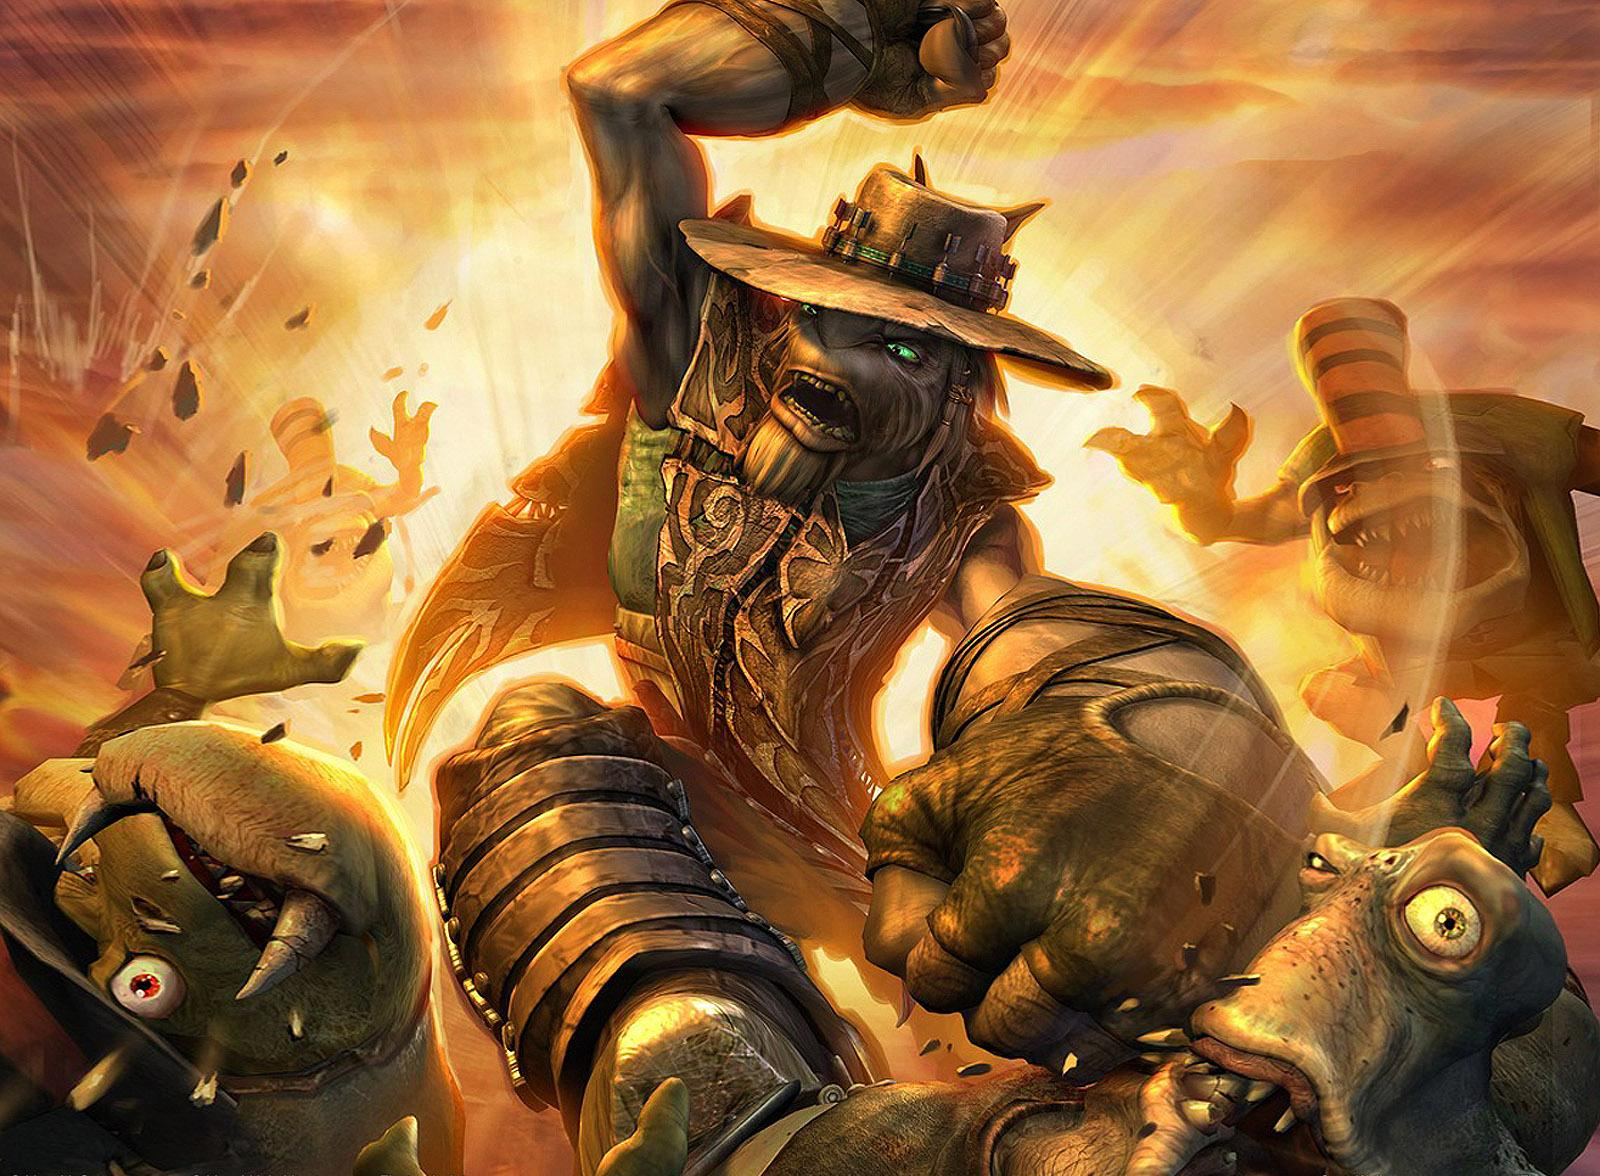 Oddworld: Stranger's Wrath may finally come to XBLA